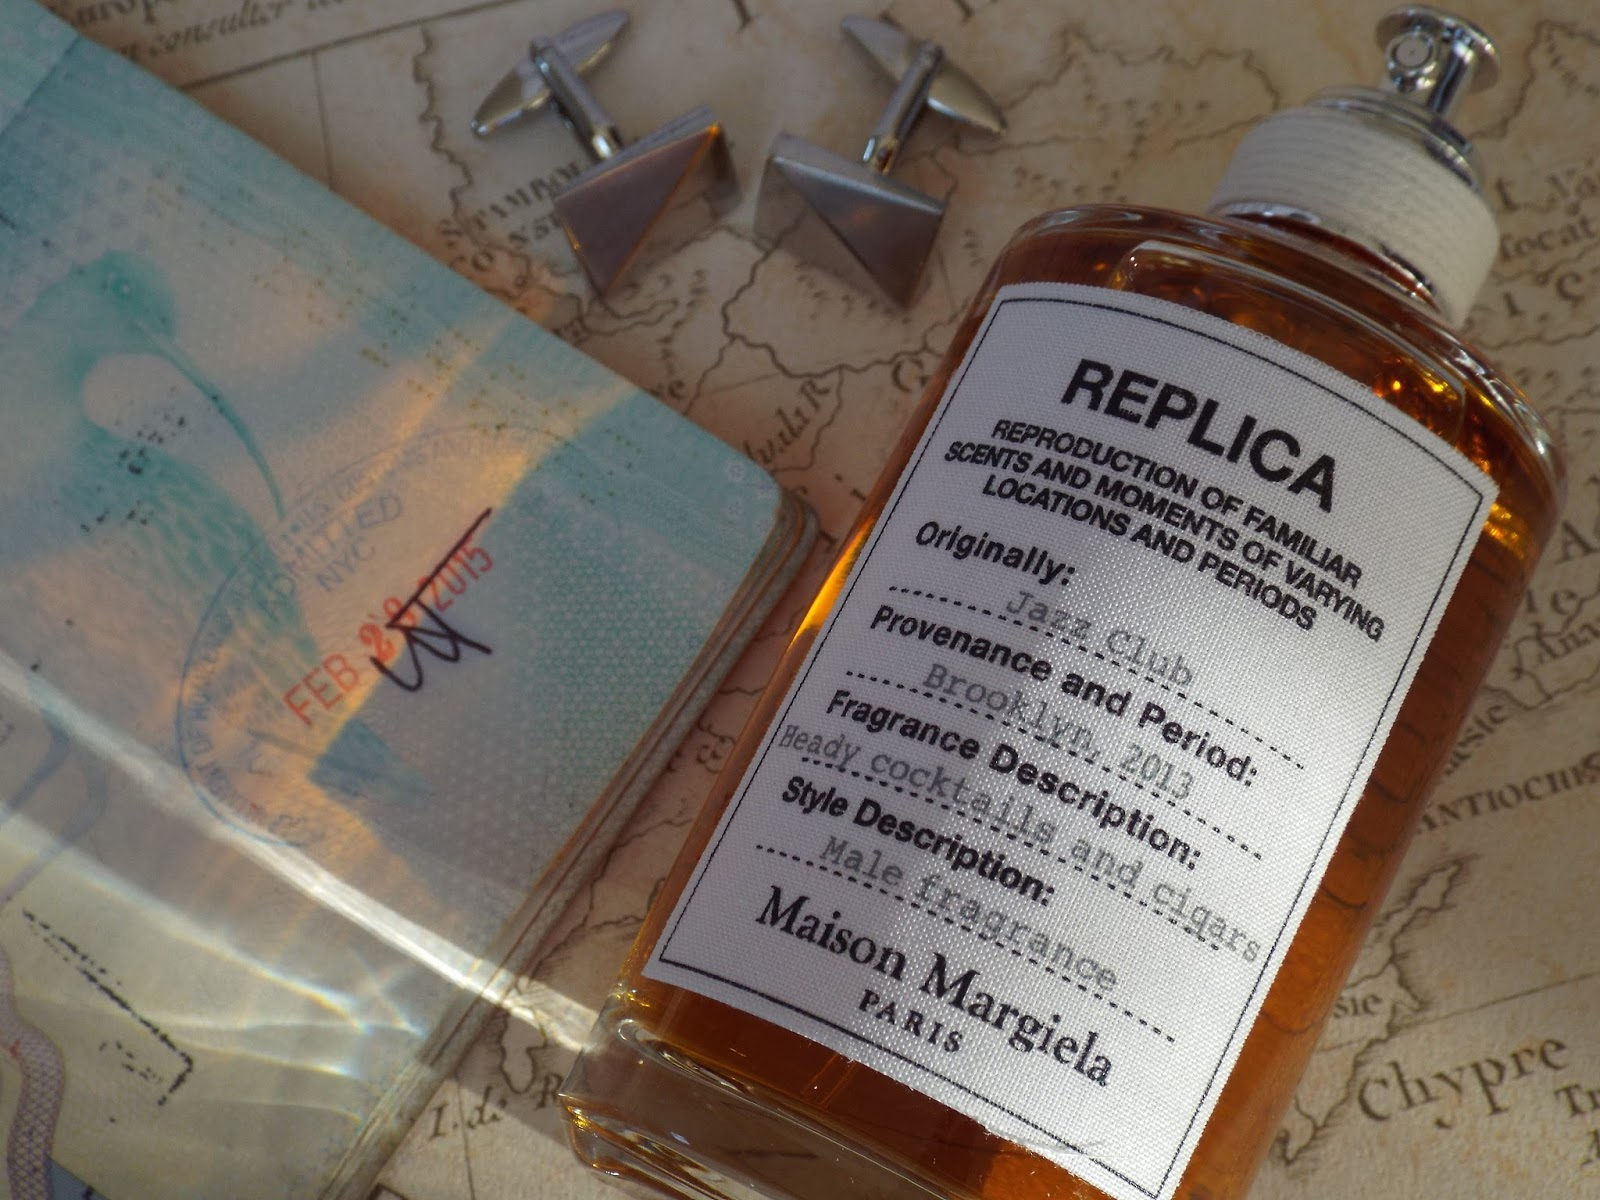 Maison Margiela, Replica Eau De Toilette, Jazz Club Review